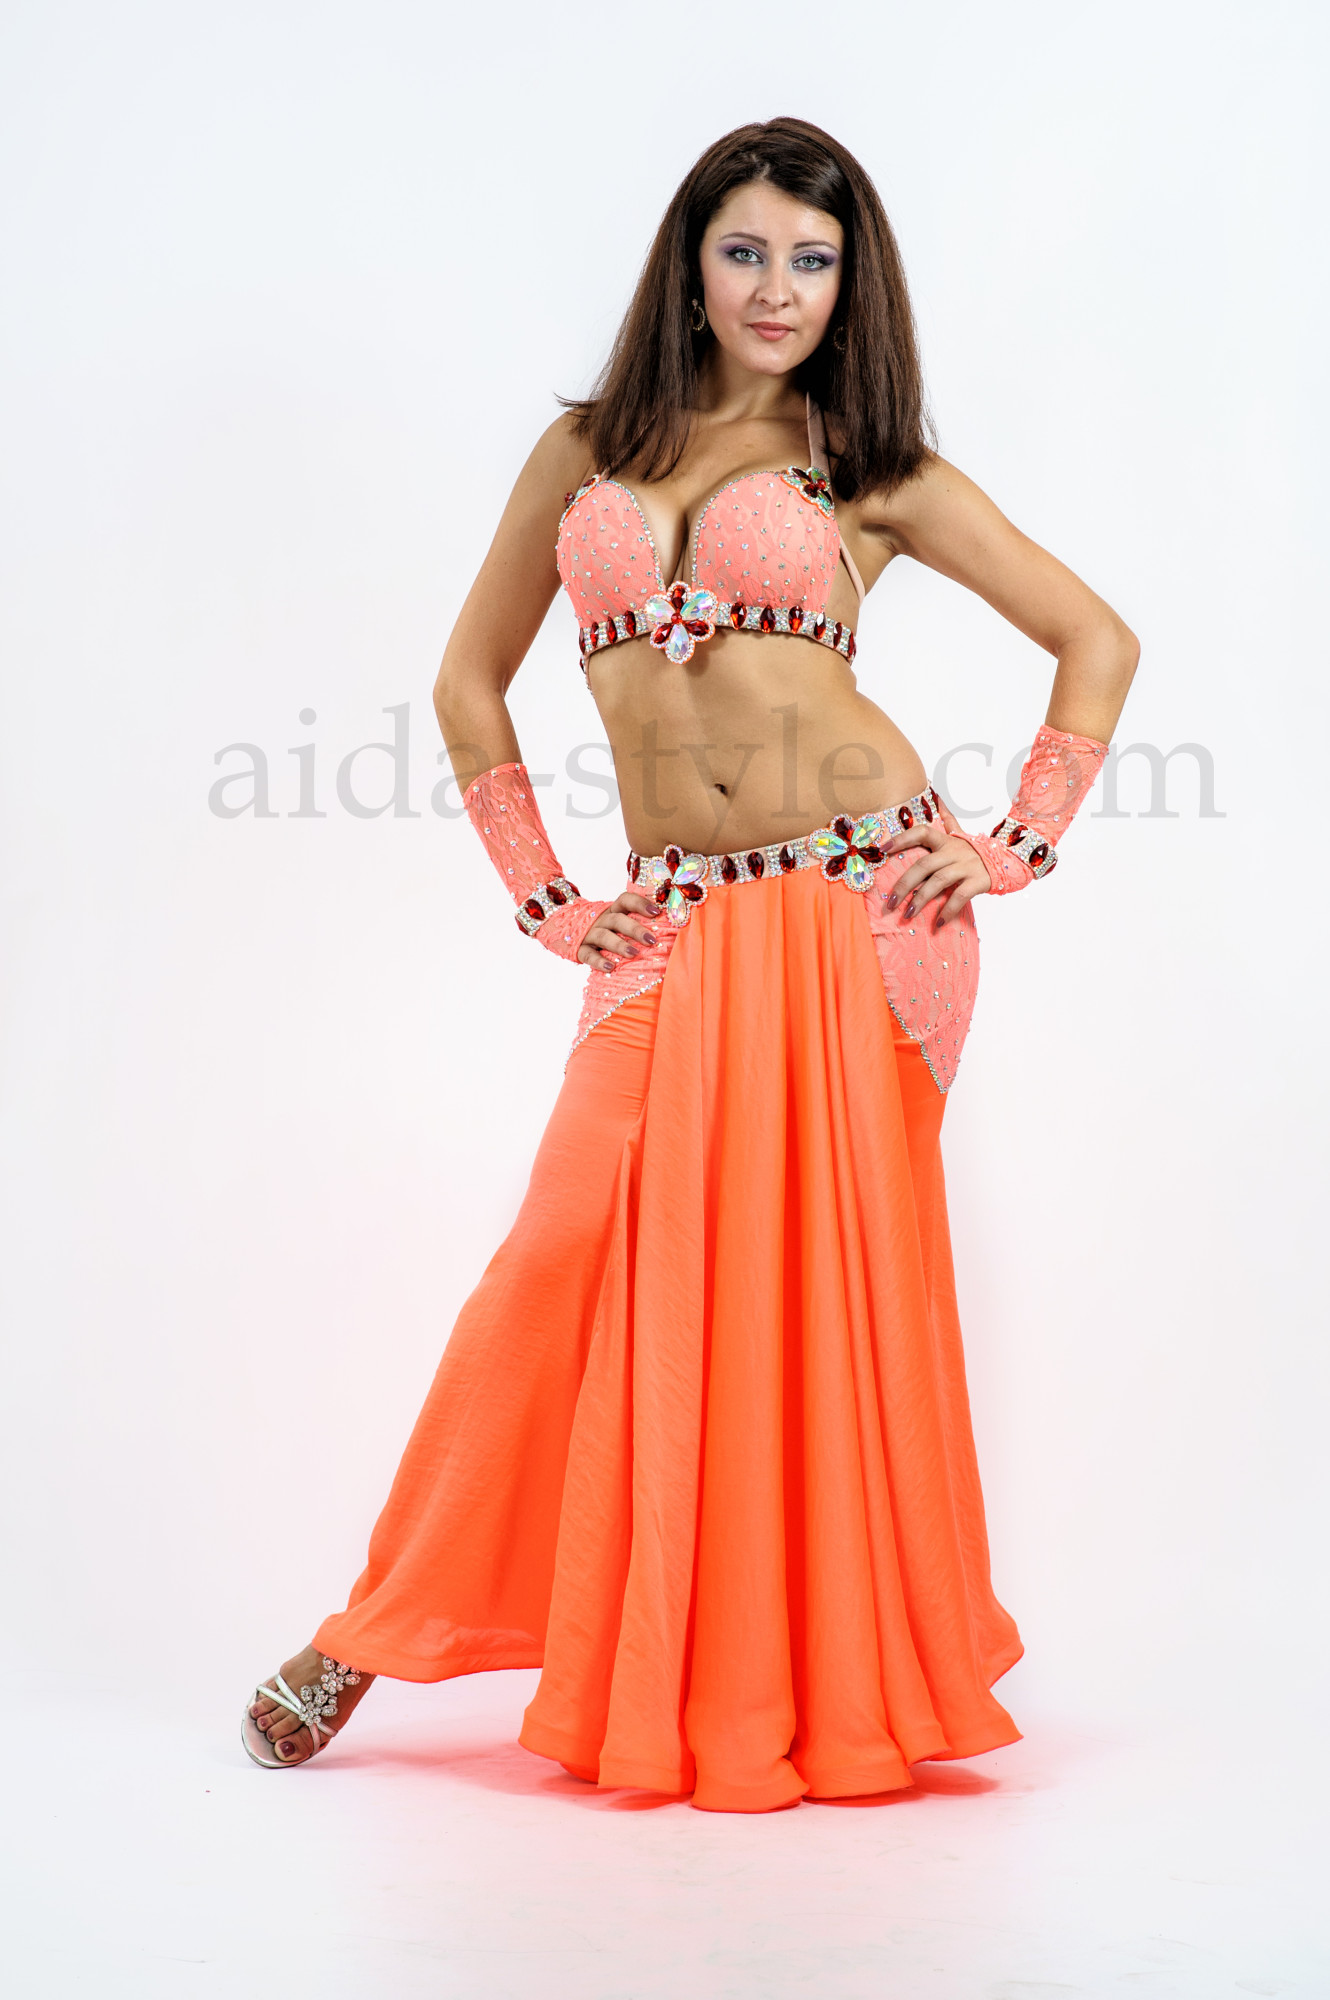 Elegant and beautiful professional custom made belly dance outfit in peach and pink